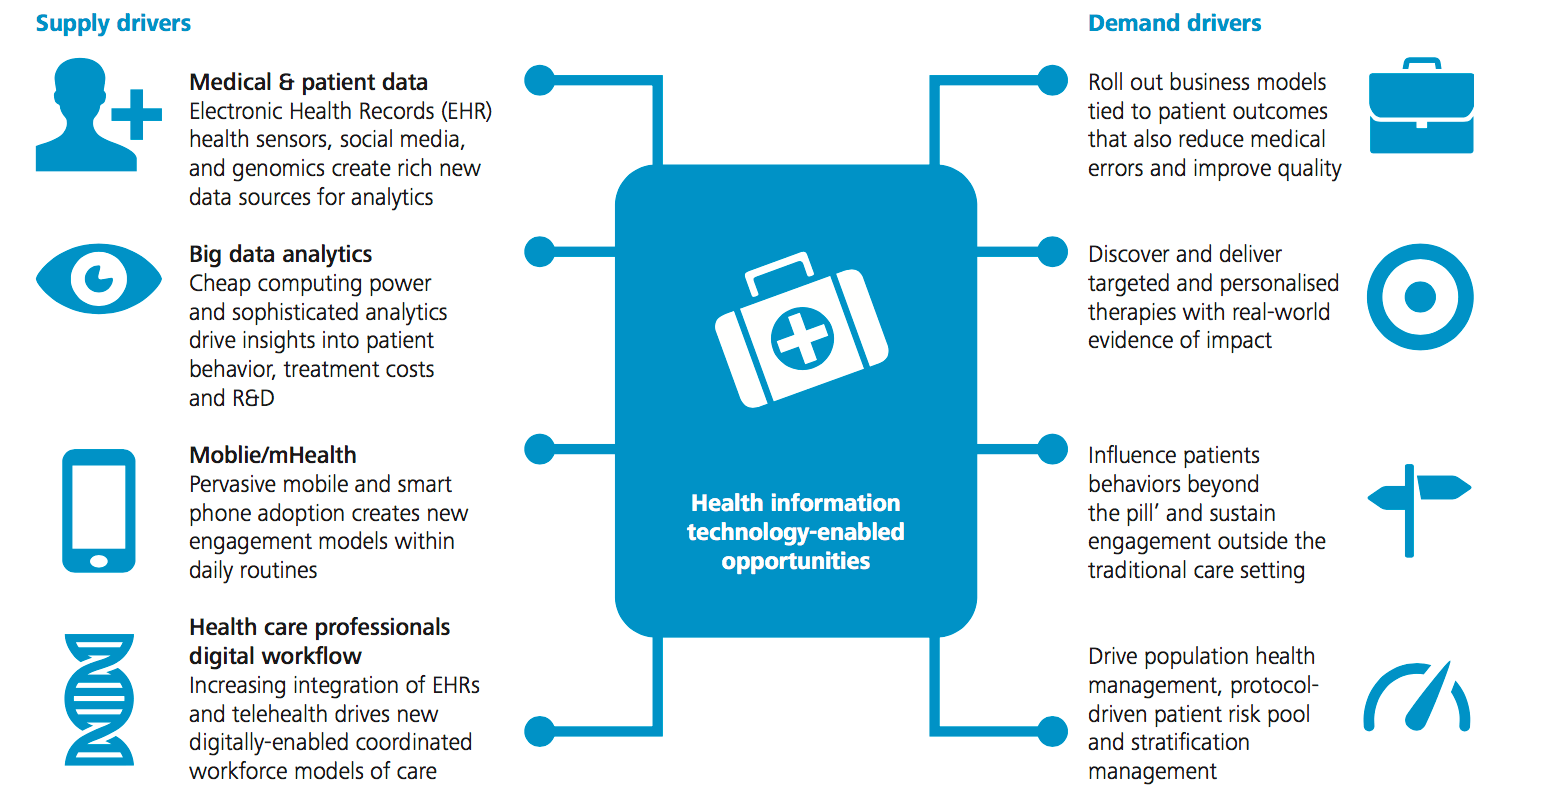 Value-Based Healthcare: Game-Changer for Medical Suppliers